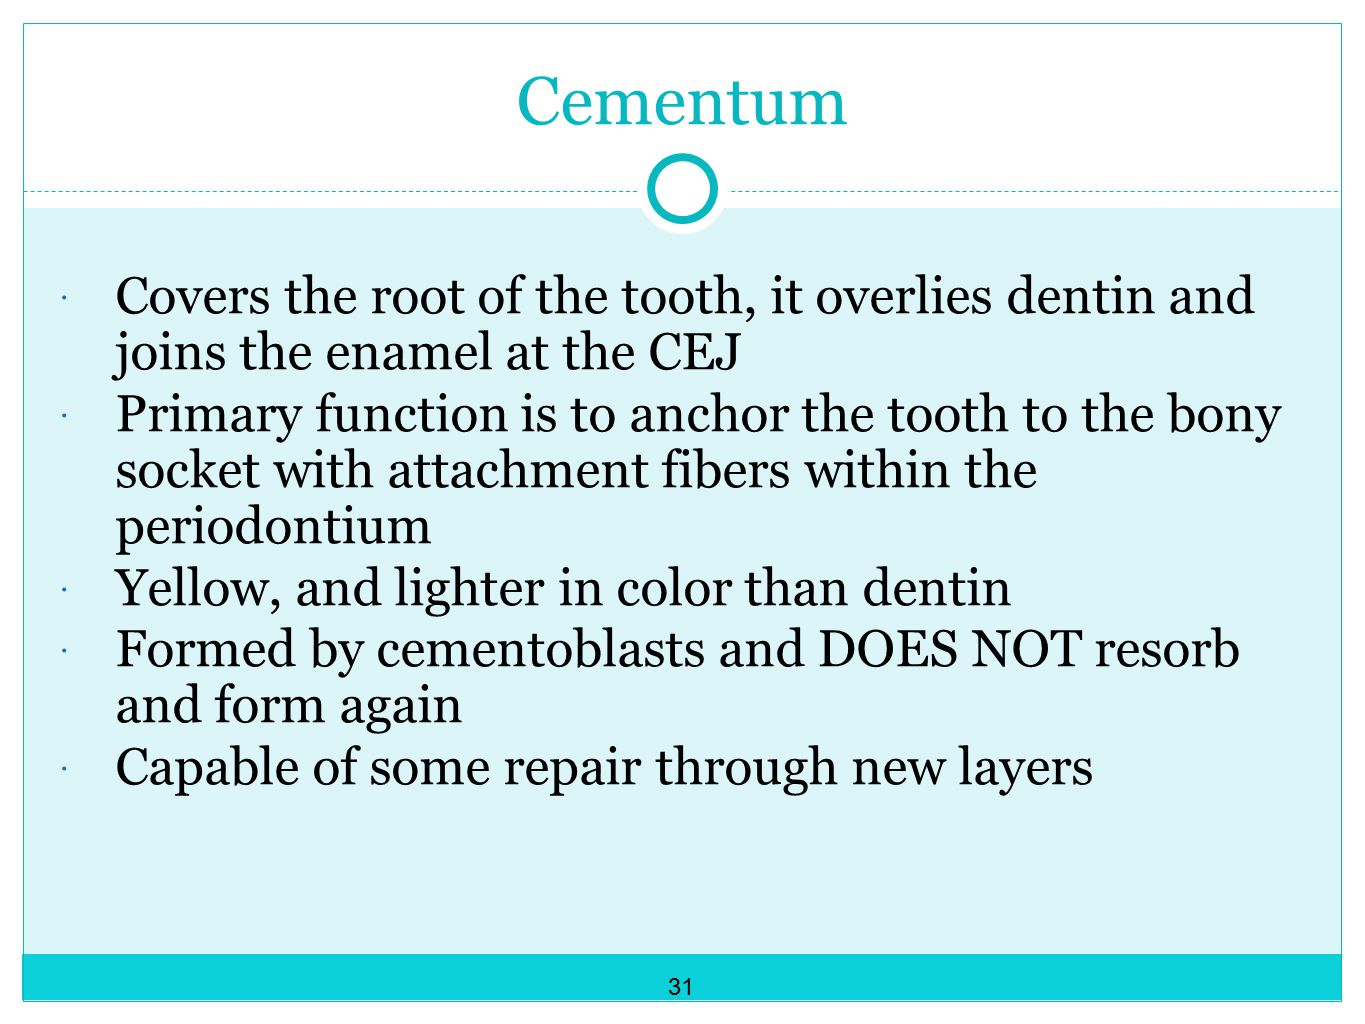 Cementum Covers the root of the tooth, it overlies dentin and joins the enamel at the CEJ.